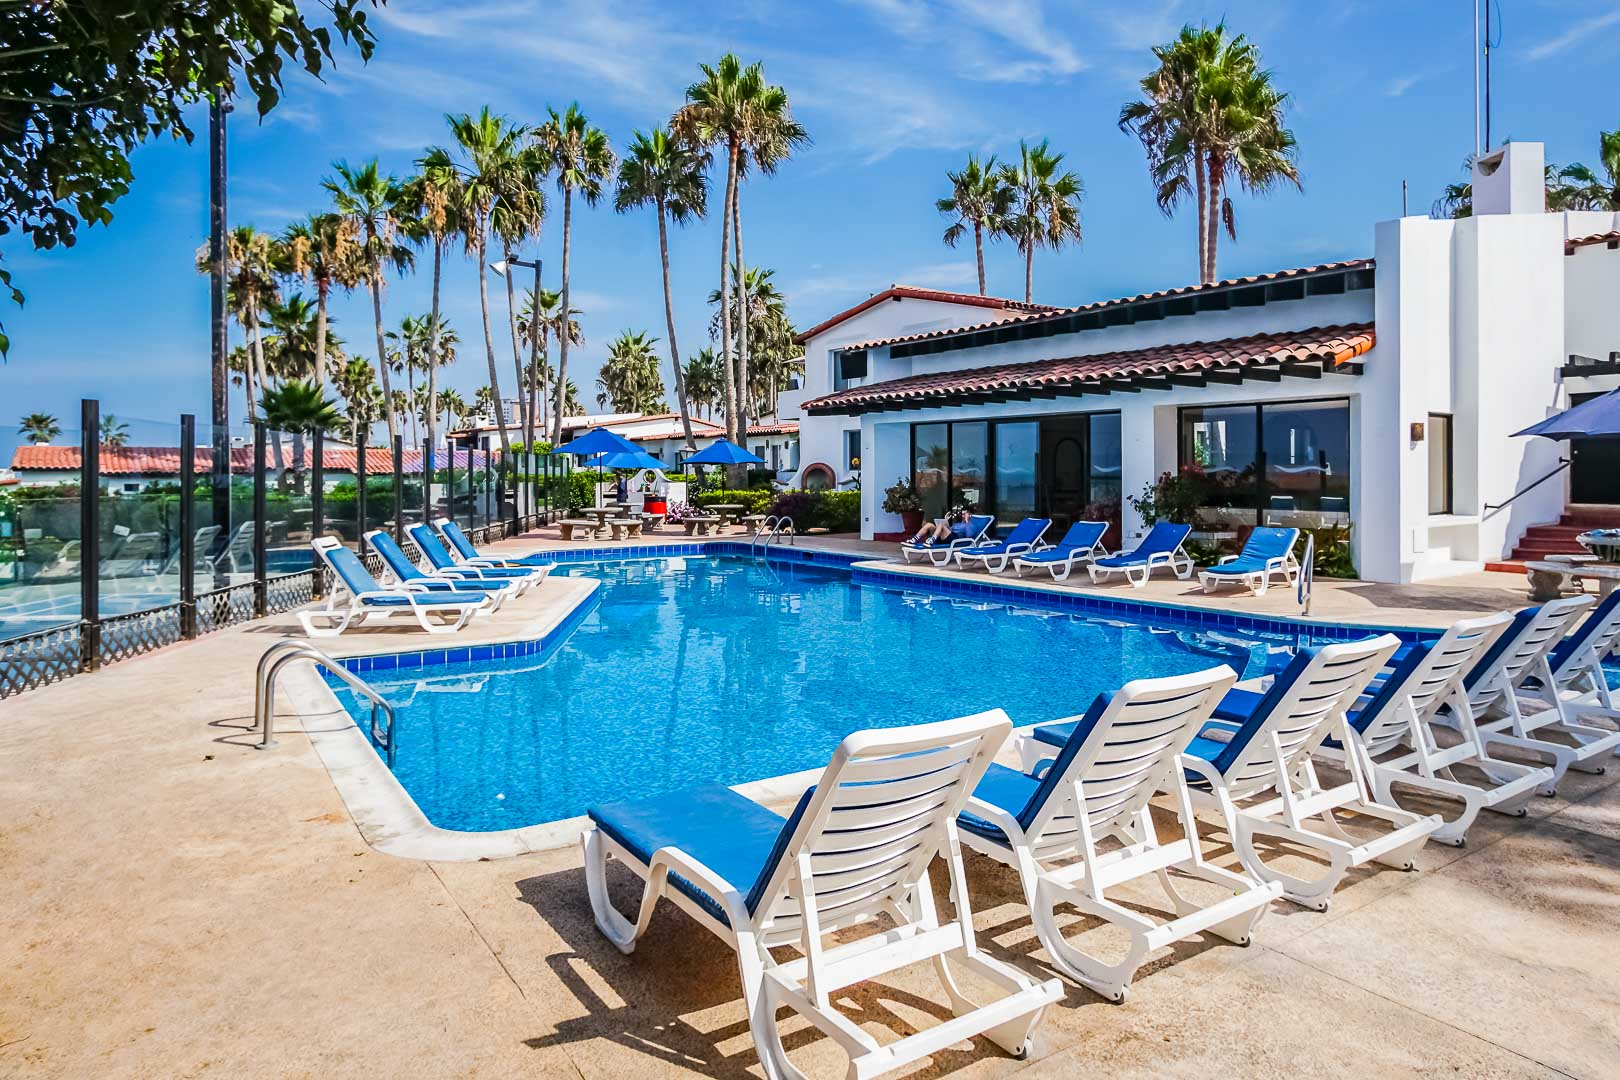 A crisp outdoor swimming pool at VRI's La Paloma in Rosarito, Mexico.